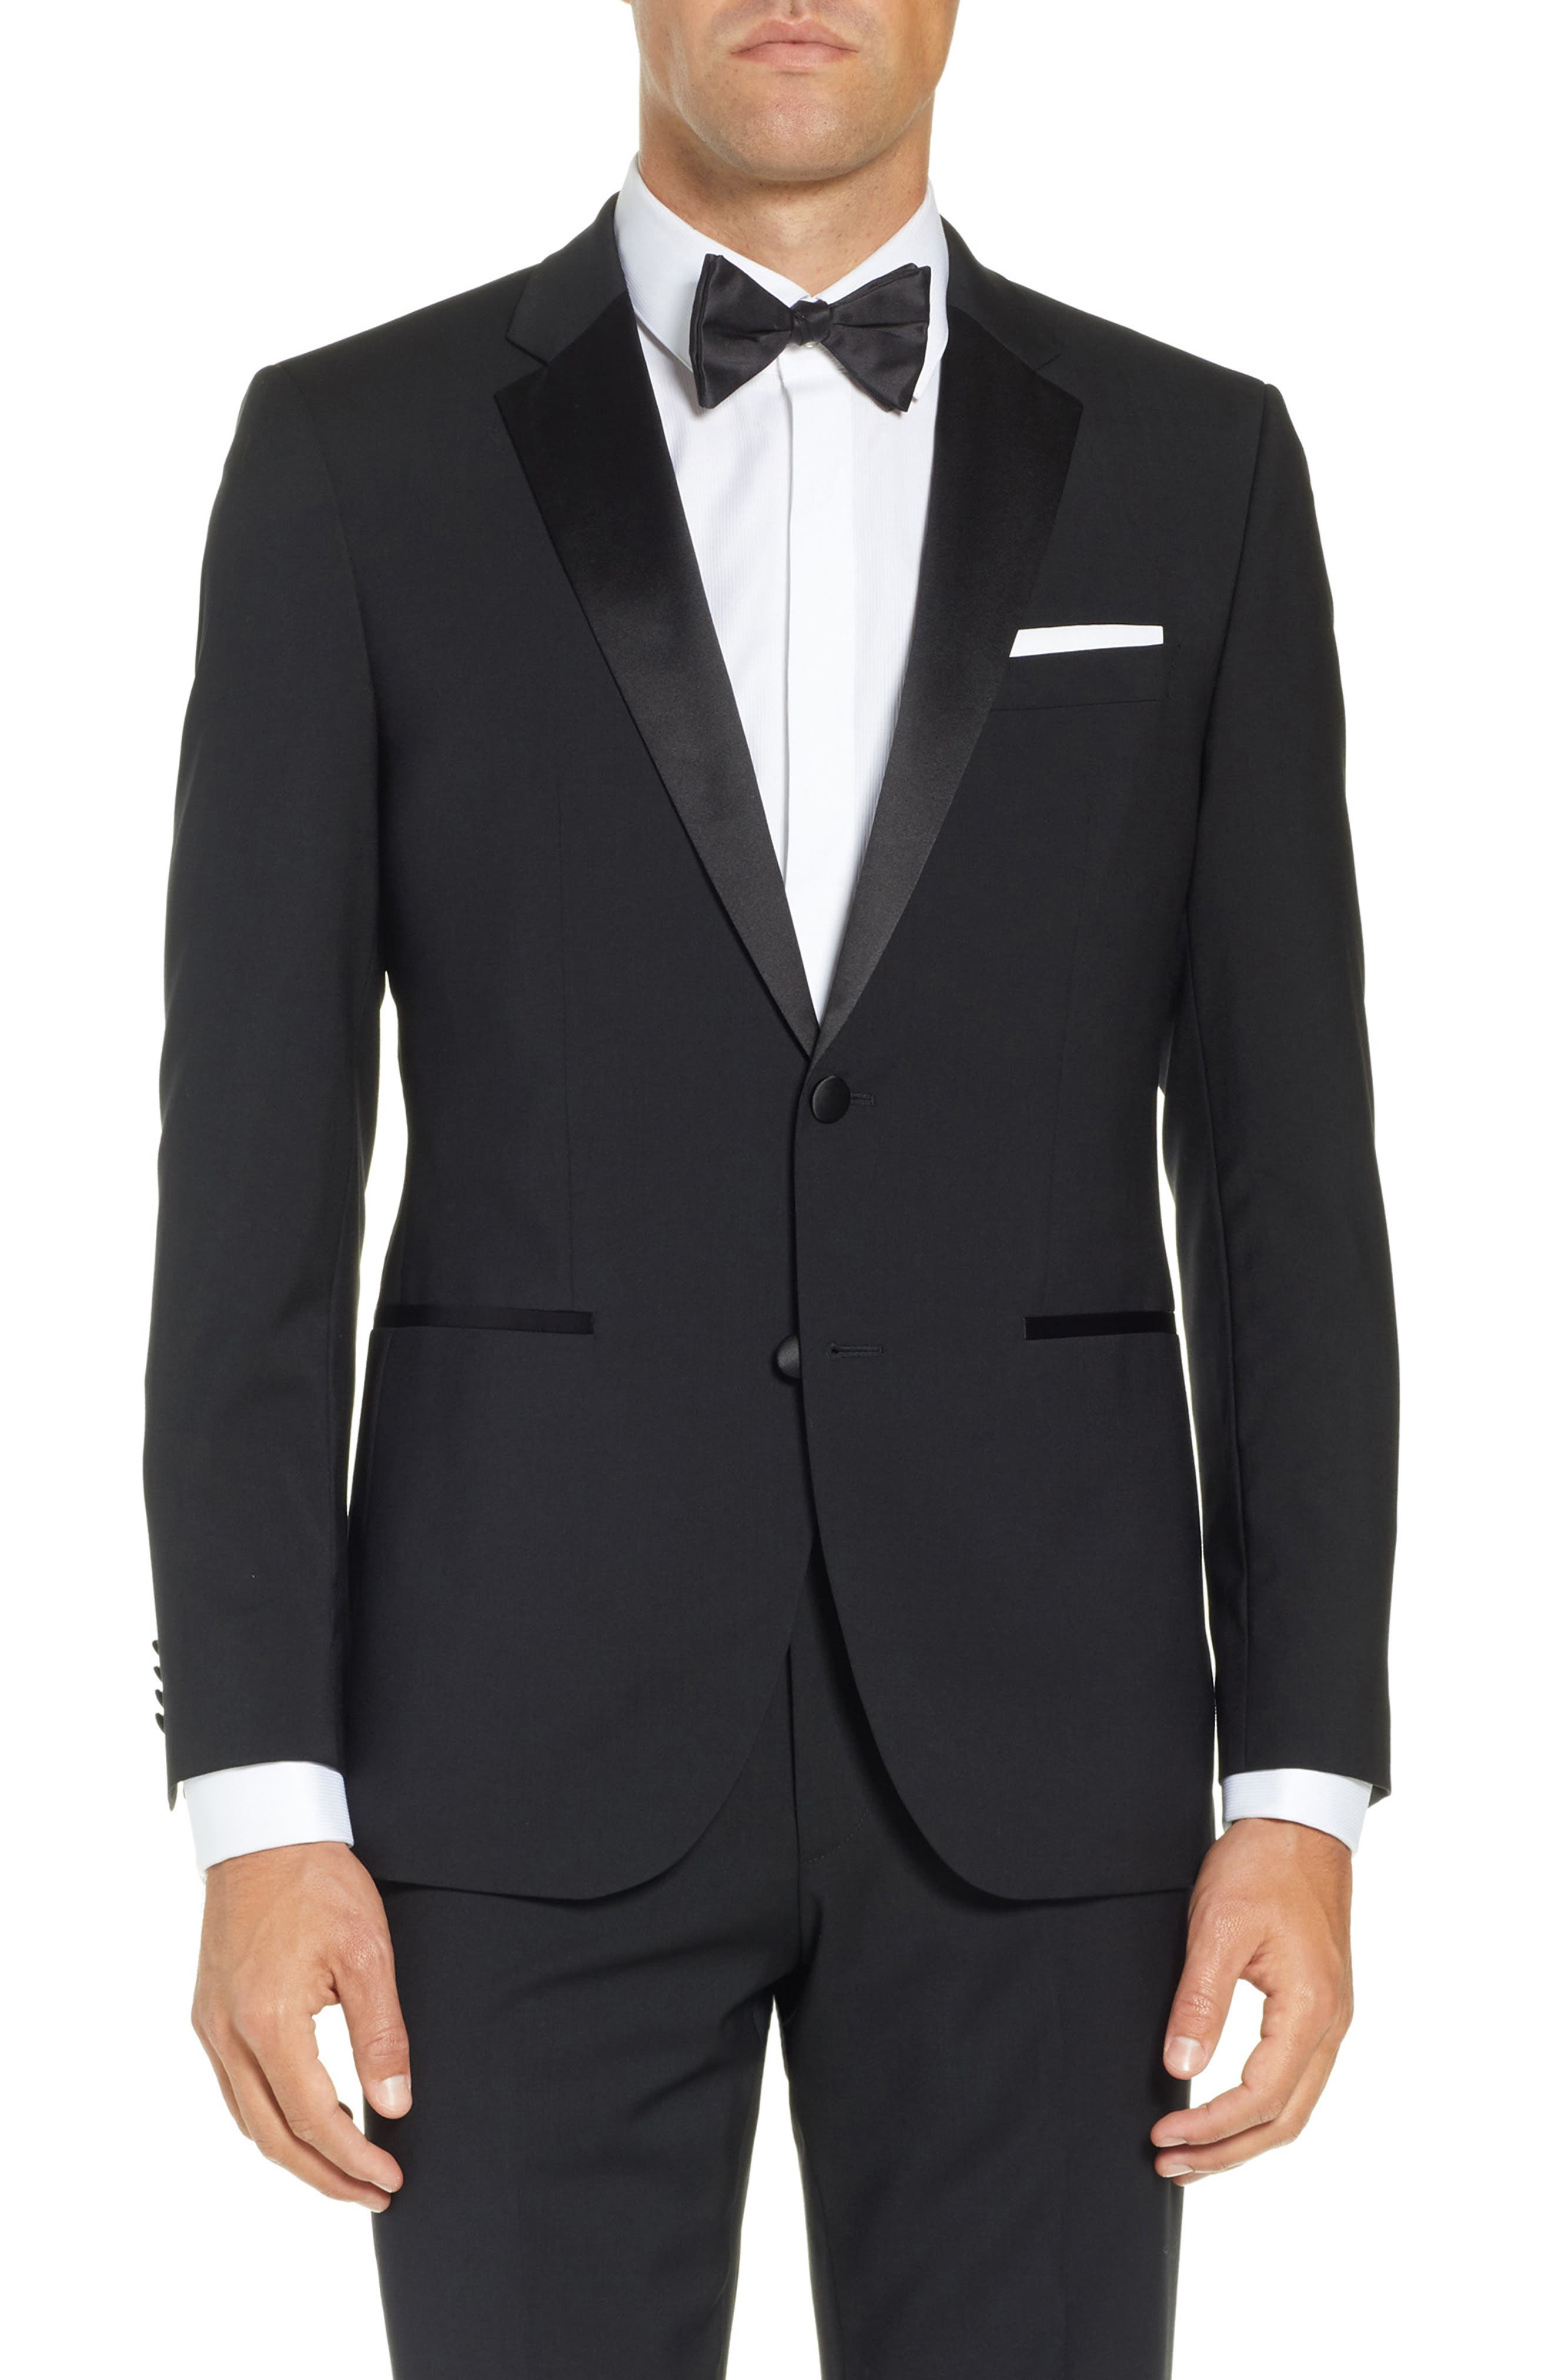 BOSS,                             The Stars/Glamour Trim Fit Wool Tuxedo,                             Alternate thumbnail 5, color,                             001